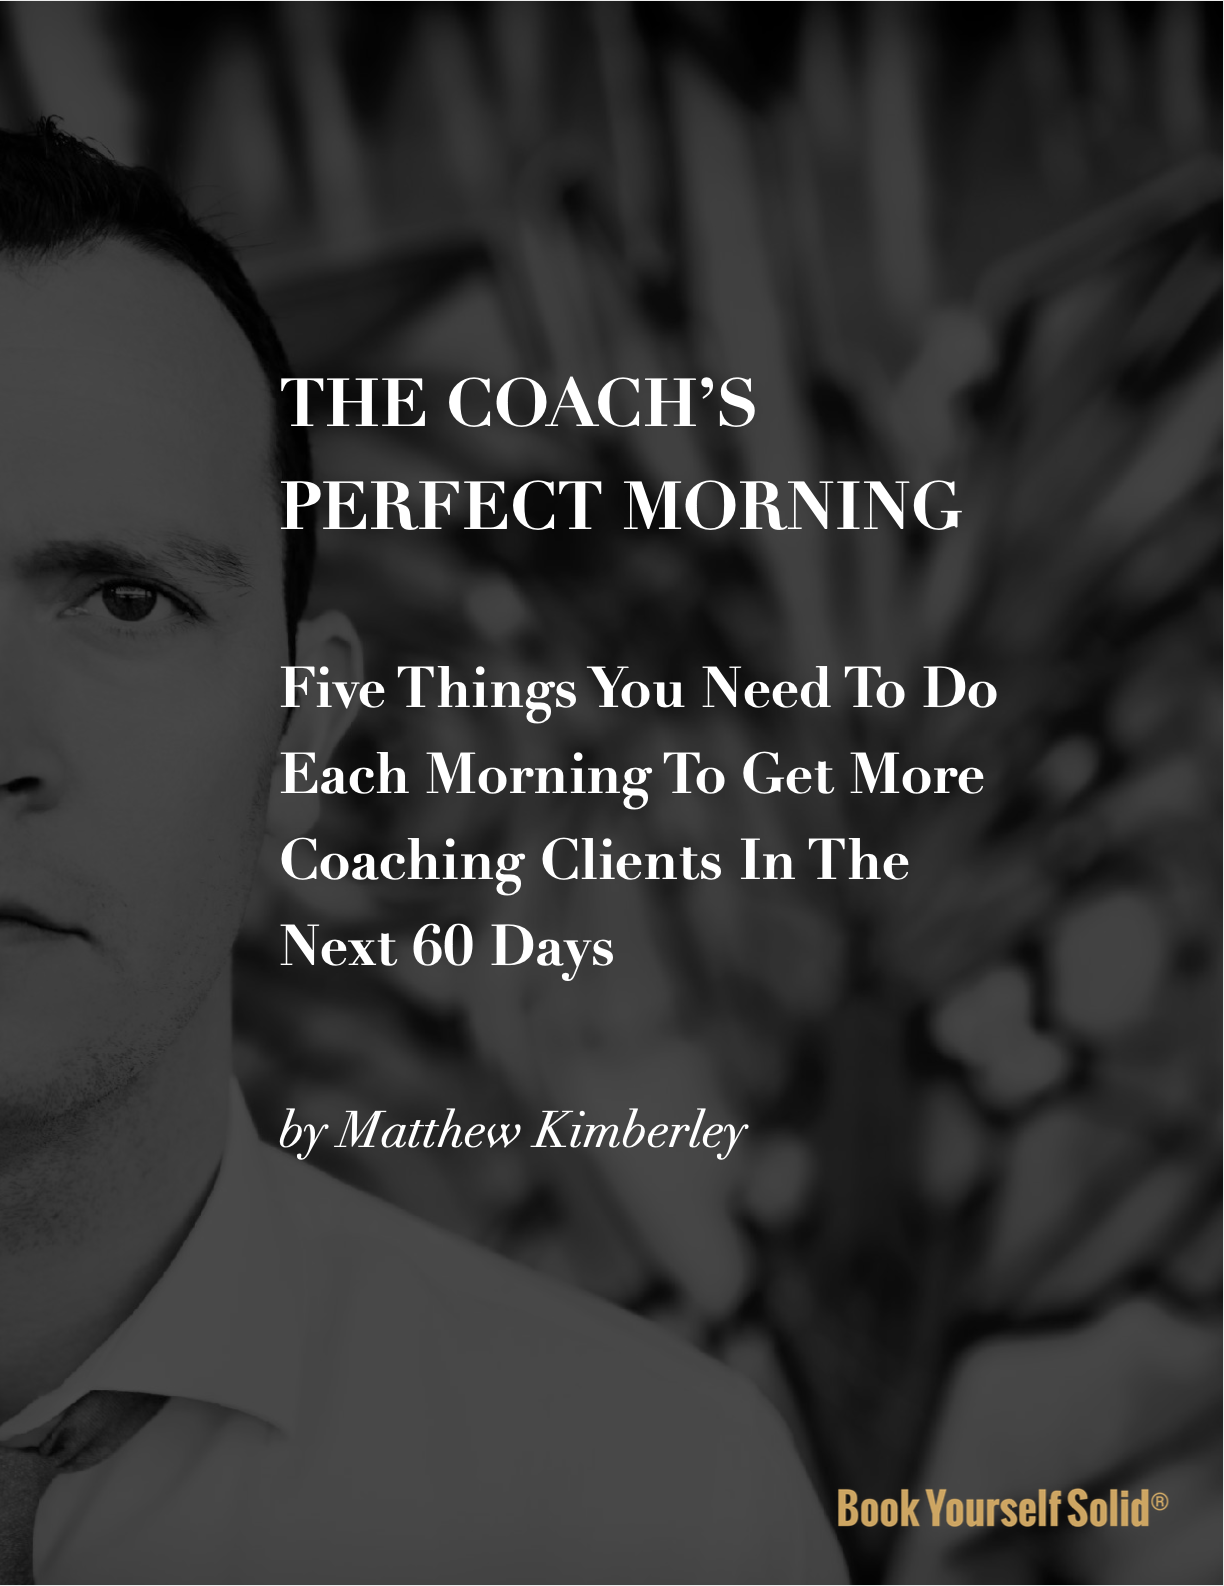 The Coach Perfect Morning